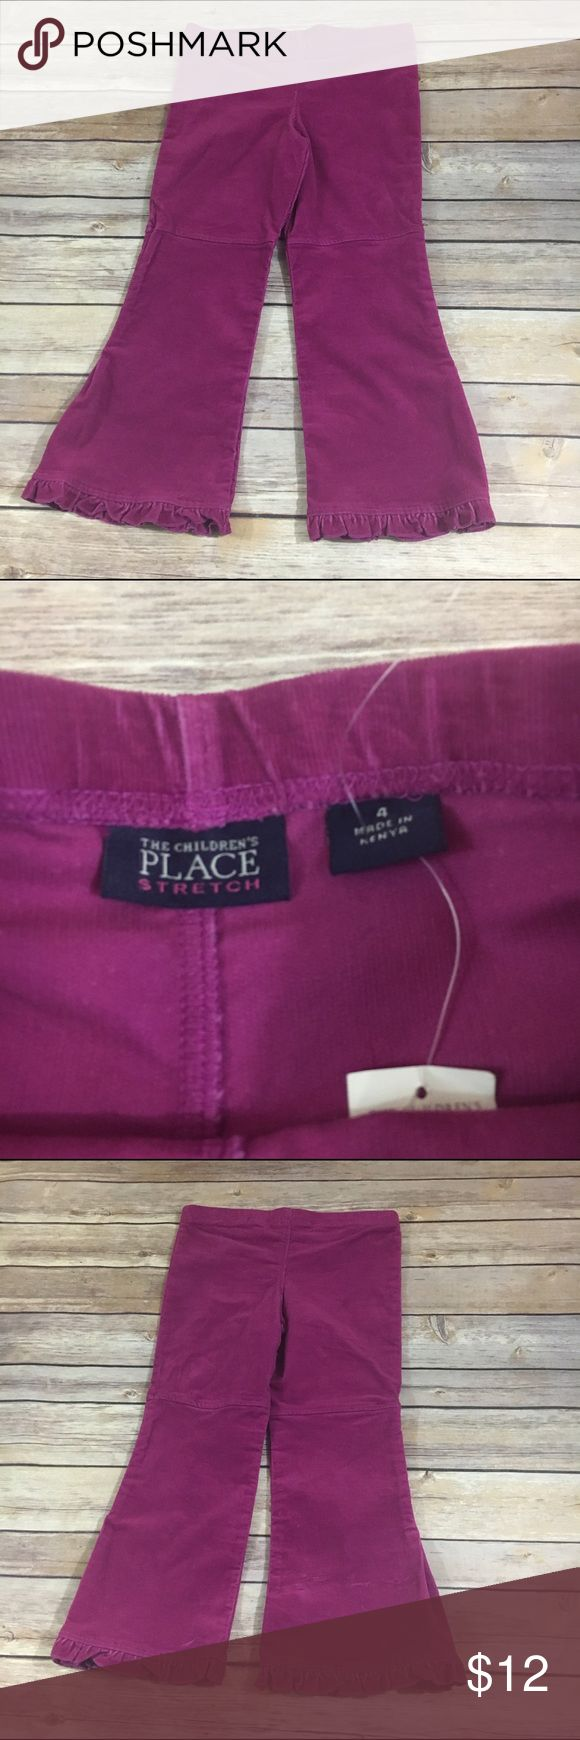 NEW NWT Children's Place Plum Magenta Cord Pants 4 NEW NWT Children's Place Plum Magenta Cord Pants 4  Elastic waist, stretch corduroy pants.  Flare leg with ruffle.  New with tag.  #new #nwt #magenta #cord #corduroy #pants #elasticwaist #plum #winter #winteriscoming #itsfallyall #fall Children's Place Bottoms Casual